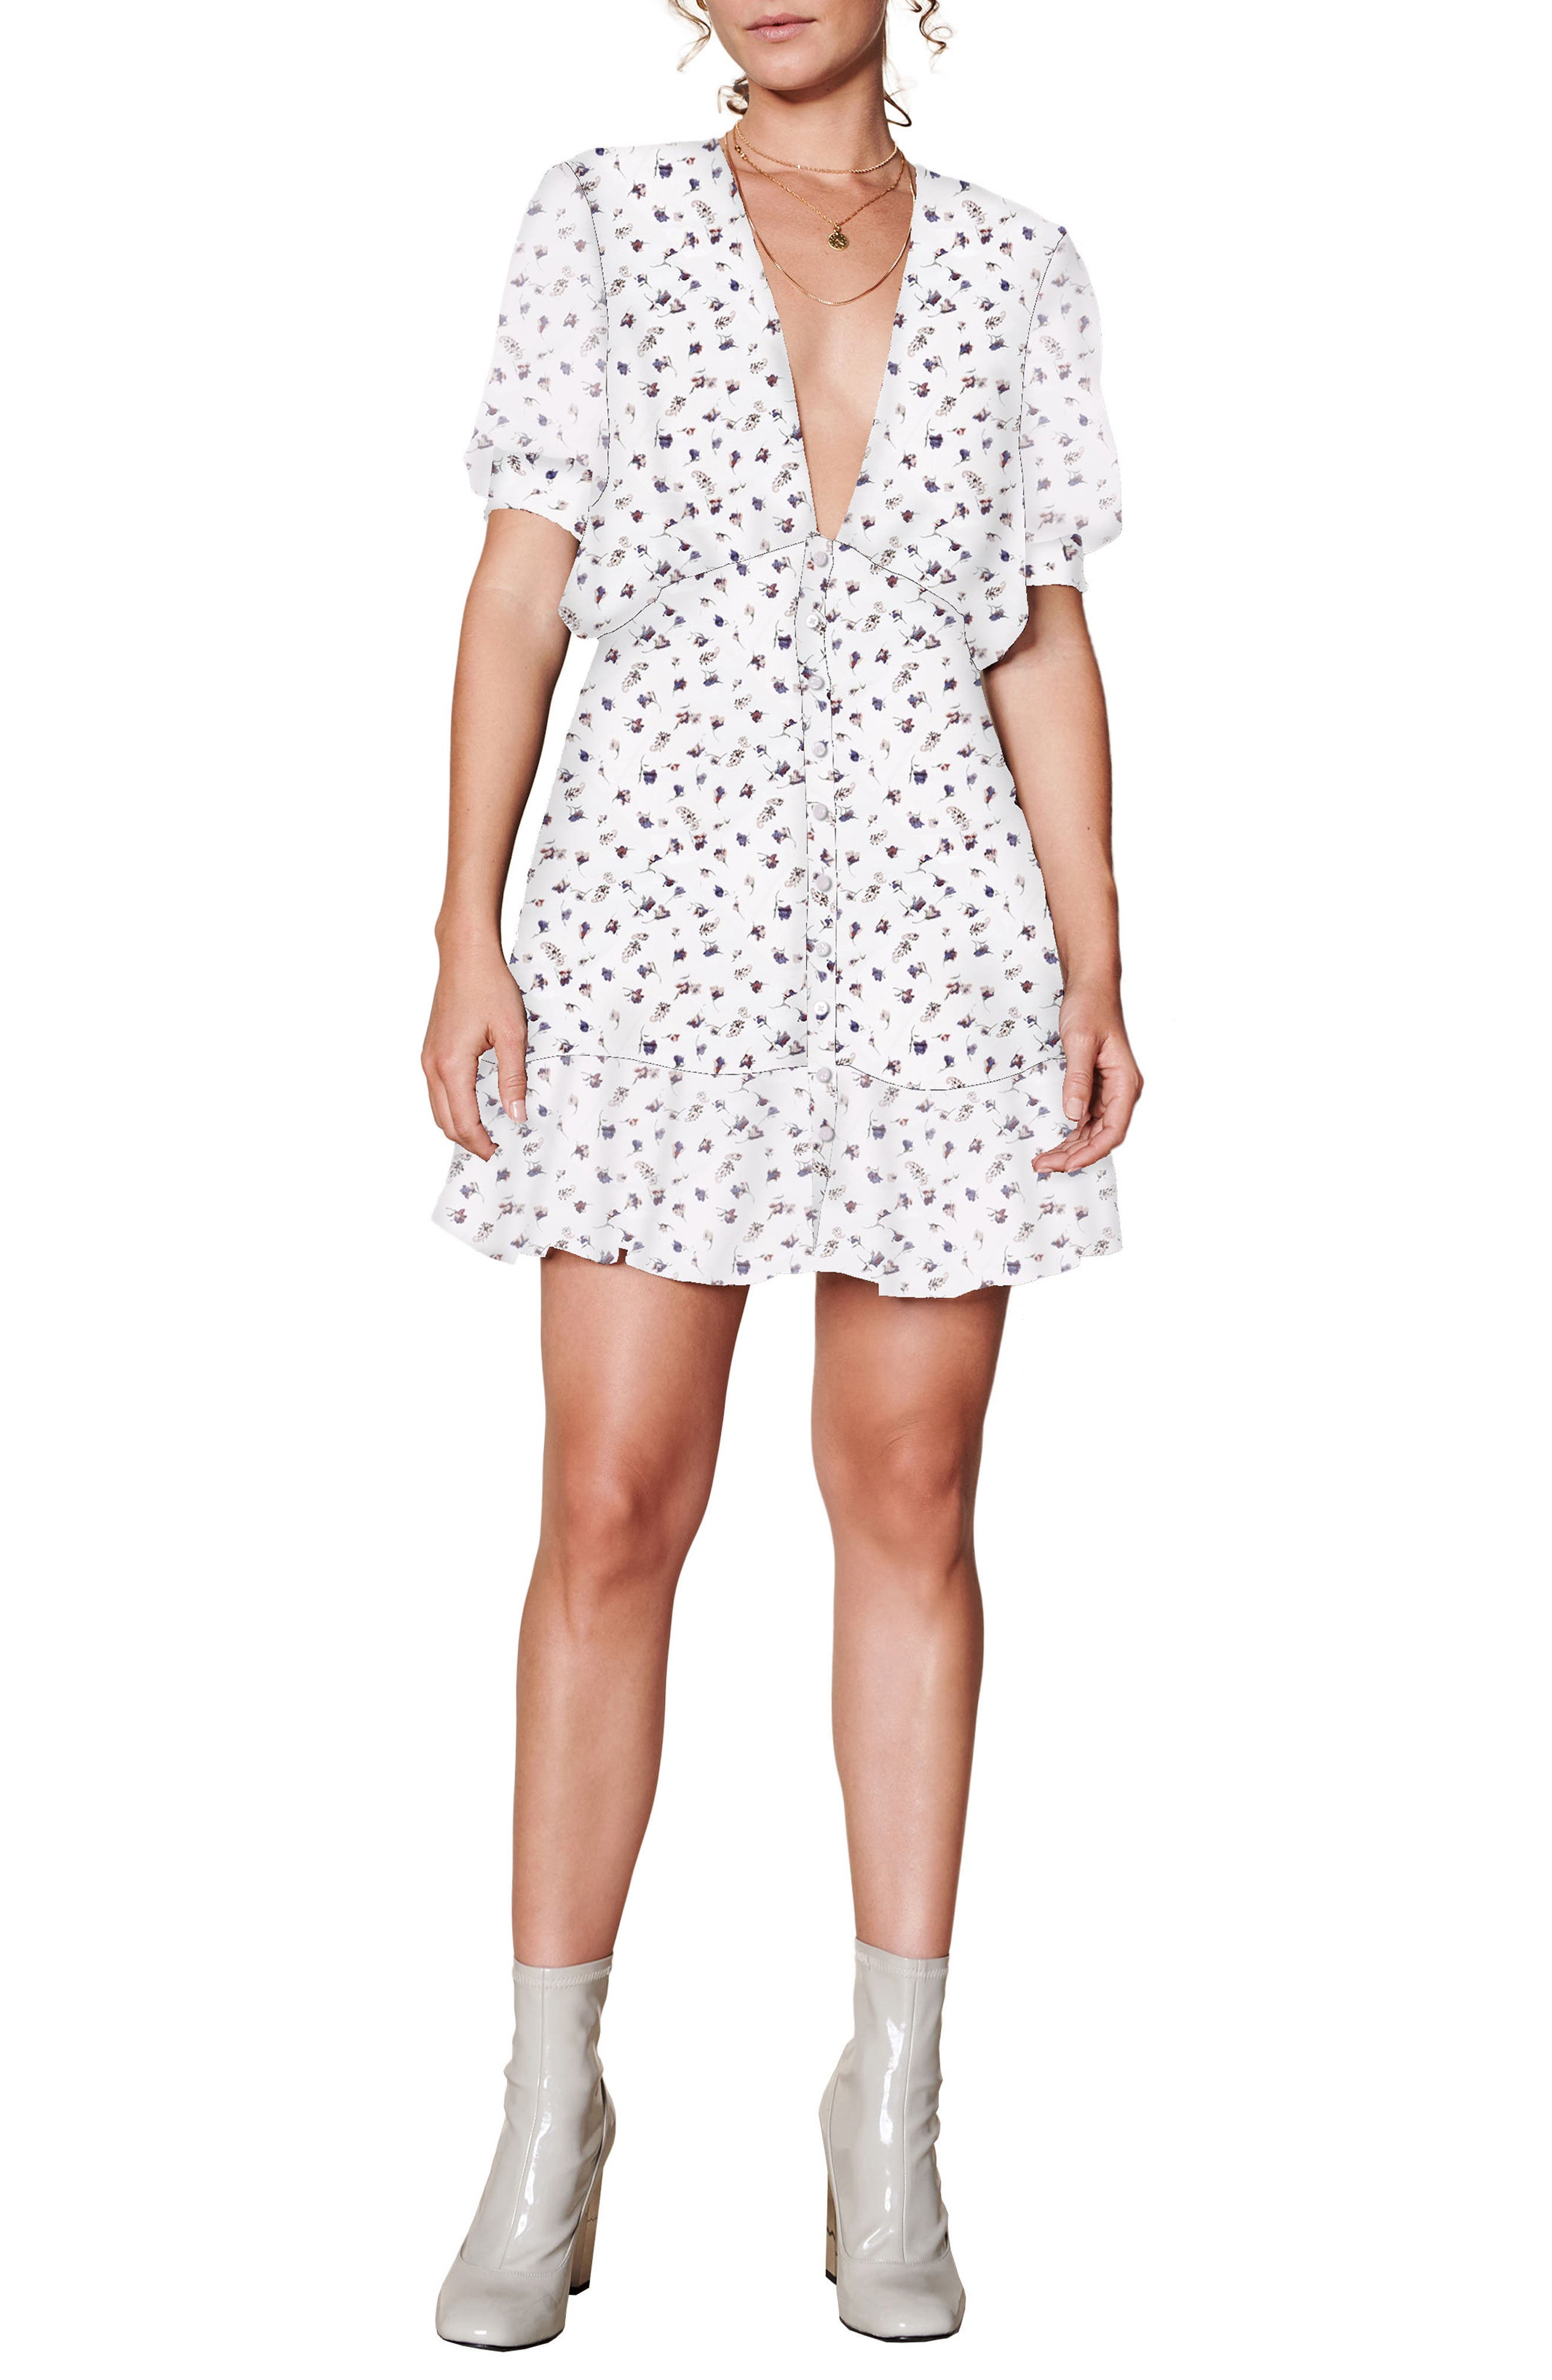 Mabel Minidress,                         Main,                         color, WHITE BASE FLORAL PRINT